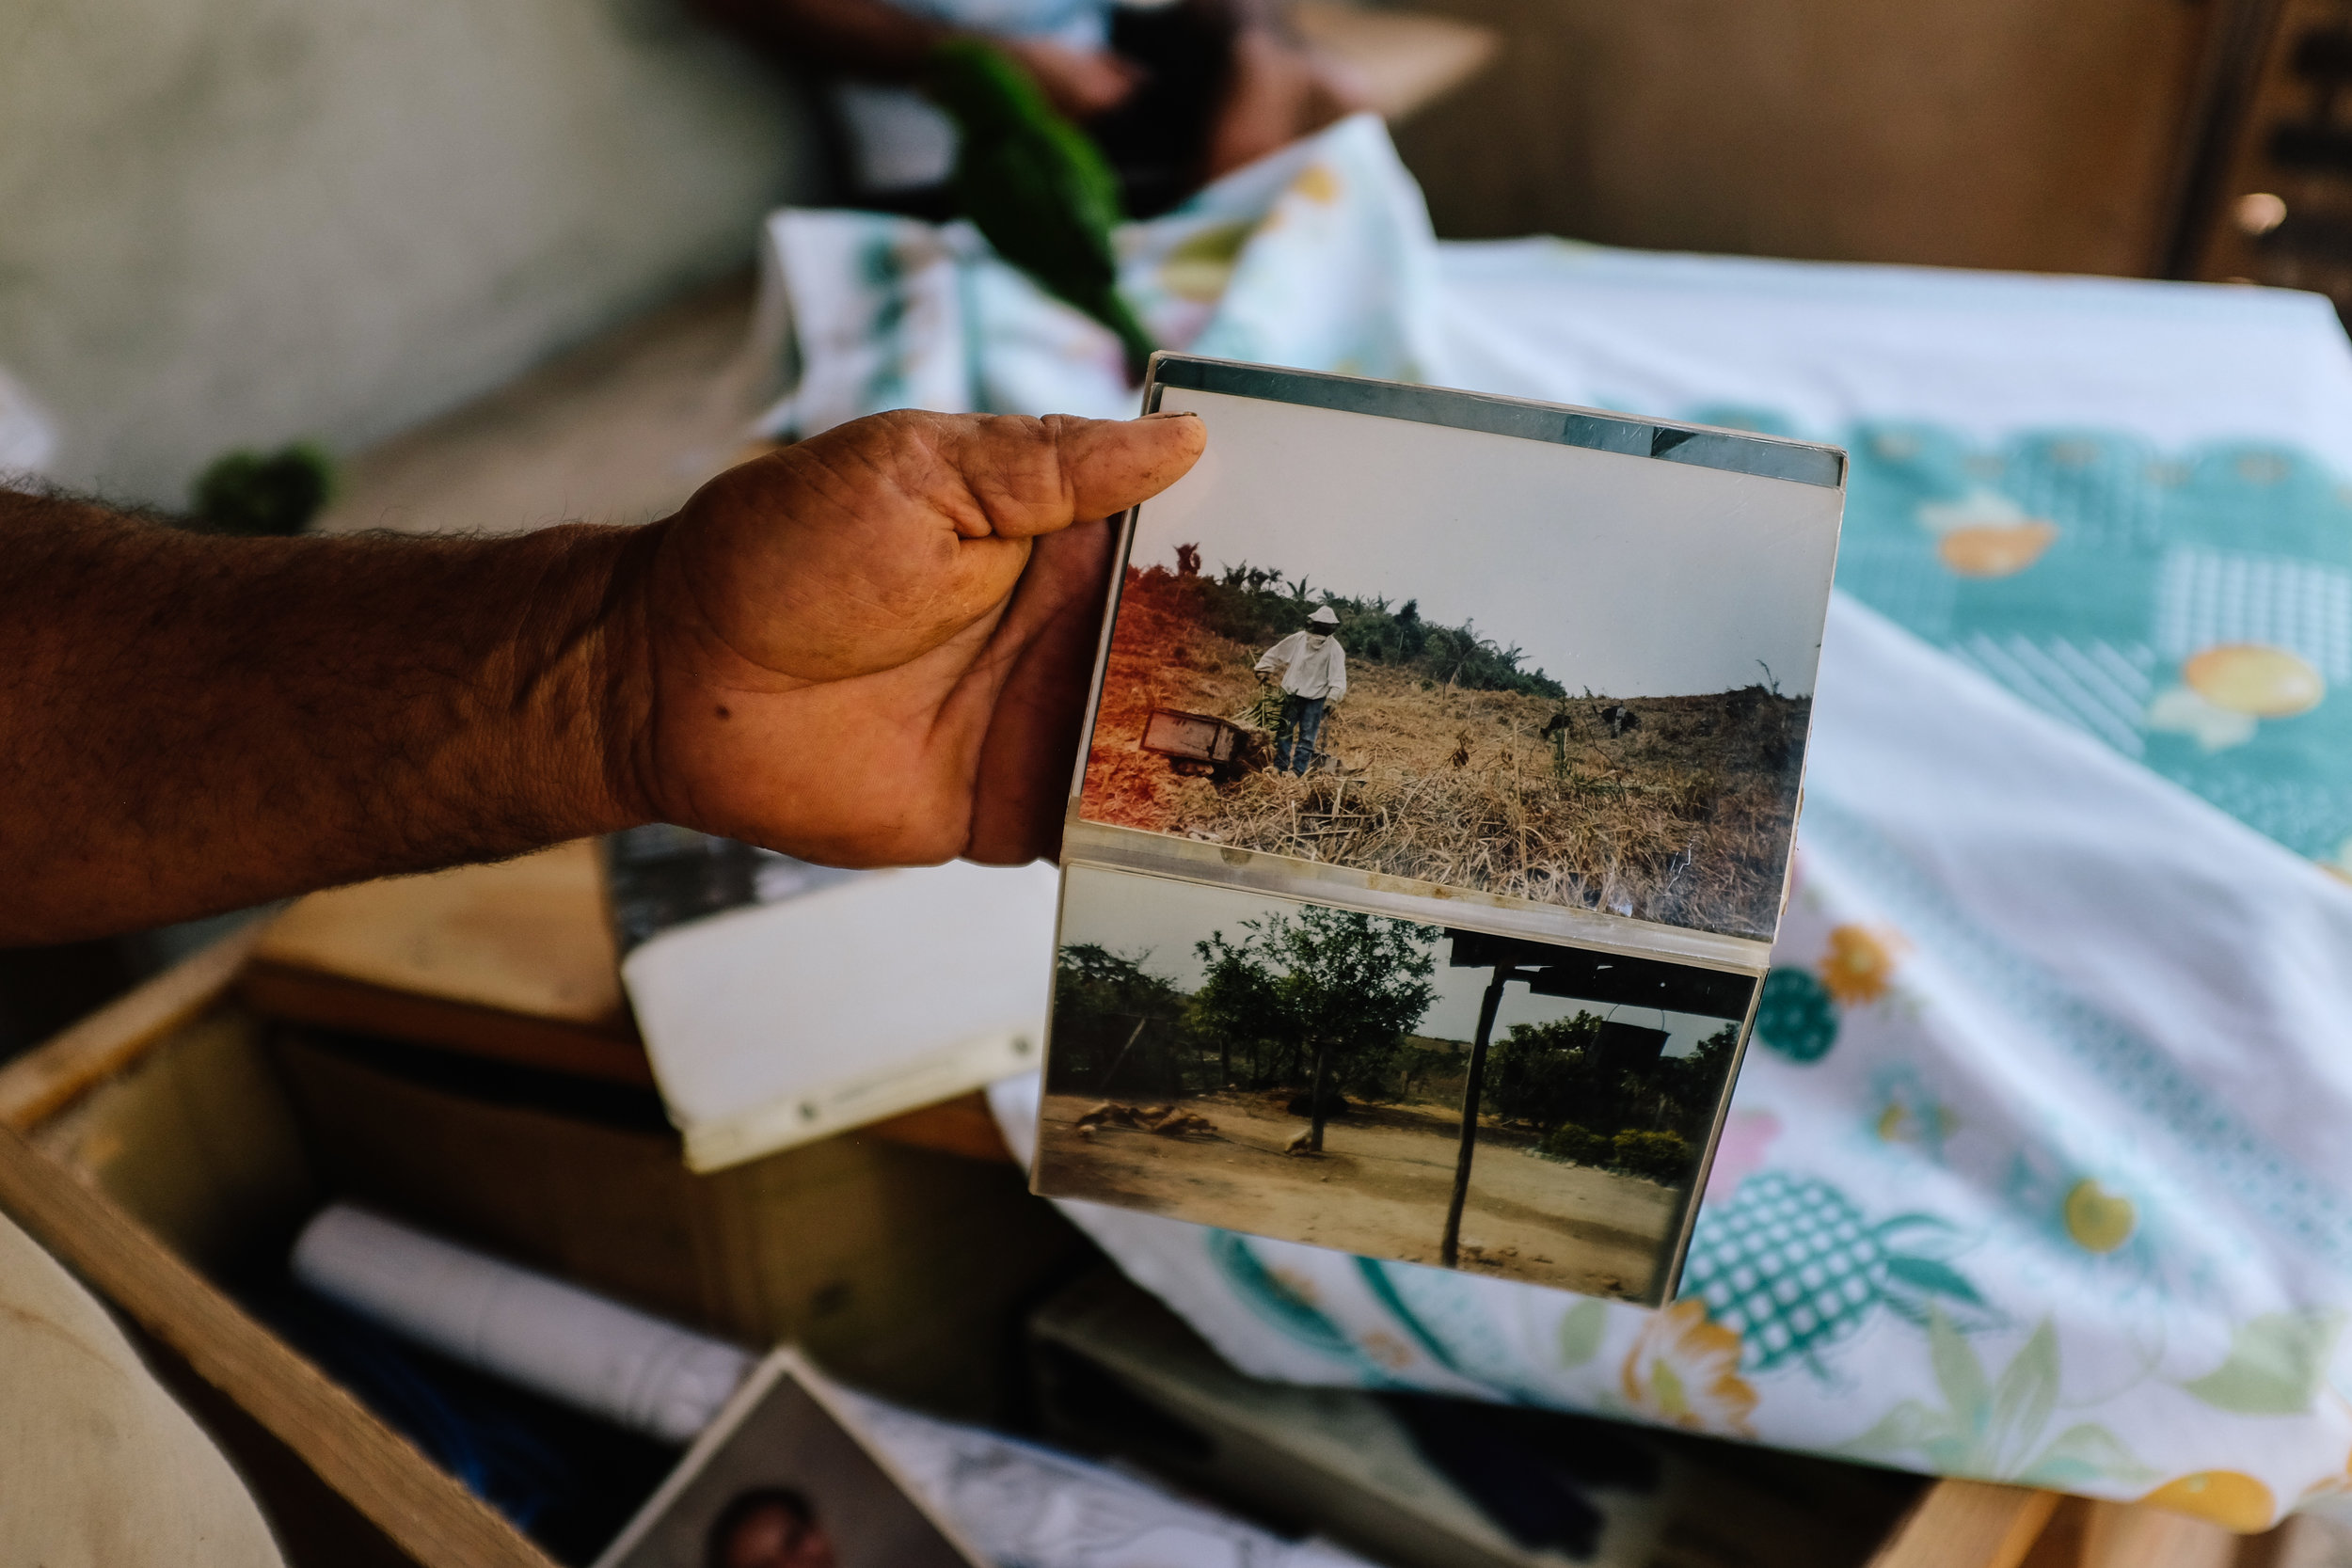 Valdir, a farmer that lives in an agrarian reform settlement in Nova Canaã, shows images from when his family moved to their property.